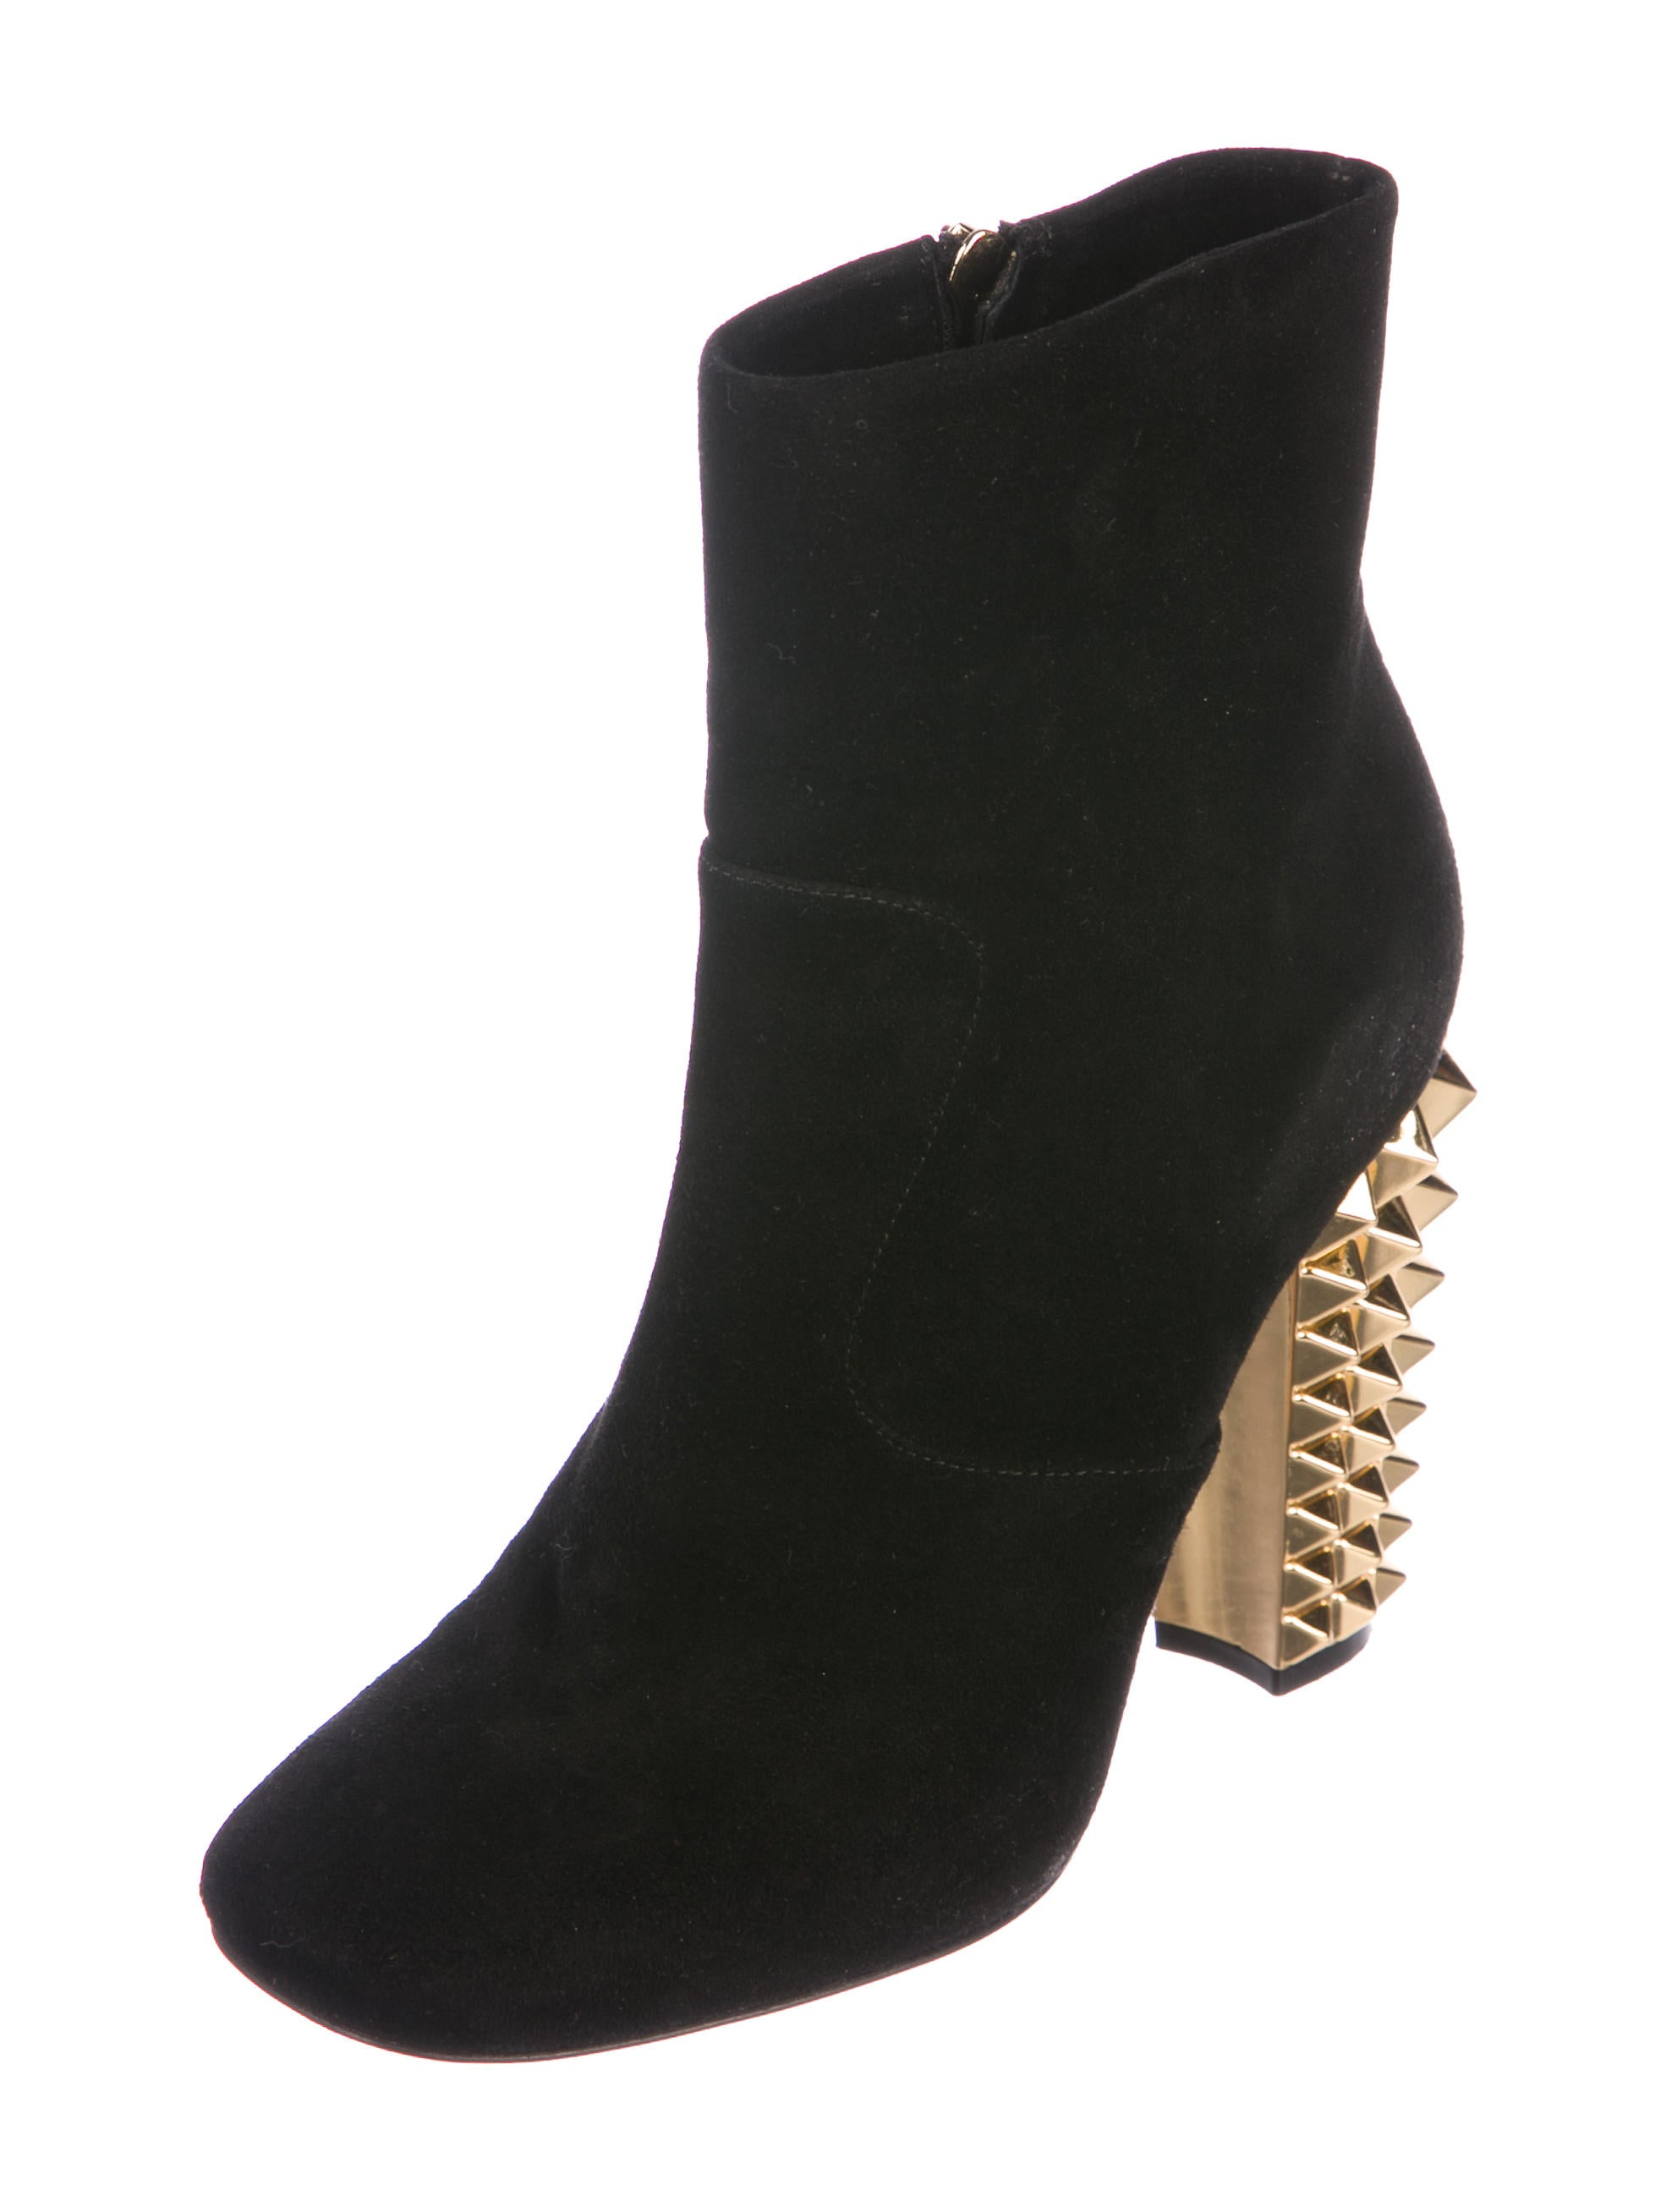 Fendi Suede Square-Toe Booties factory outlet cheap price sale countdown package 7dwH7PXx